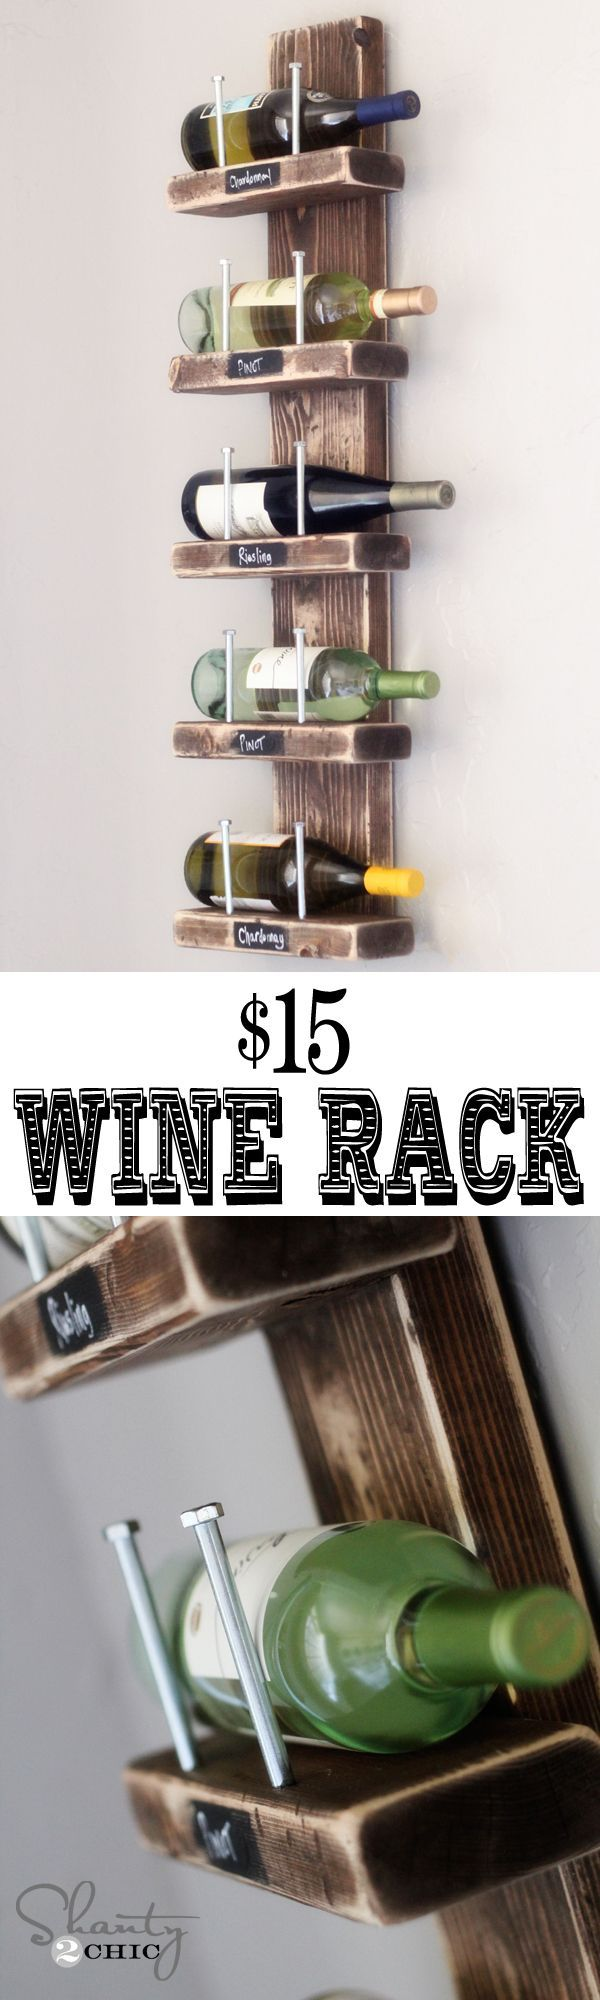 Super cute Wine Rack! #DIY This is an easy DIY project with great impact and also veryinexpensive. I probably would paint mine. If the wall is painted, I would paint the rack white so that the bottles can show nicely. If the wall is white, I probably would paint it a light grey.